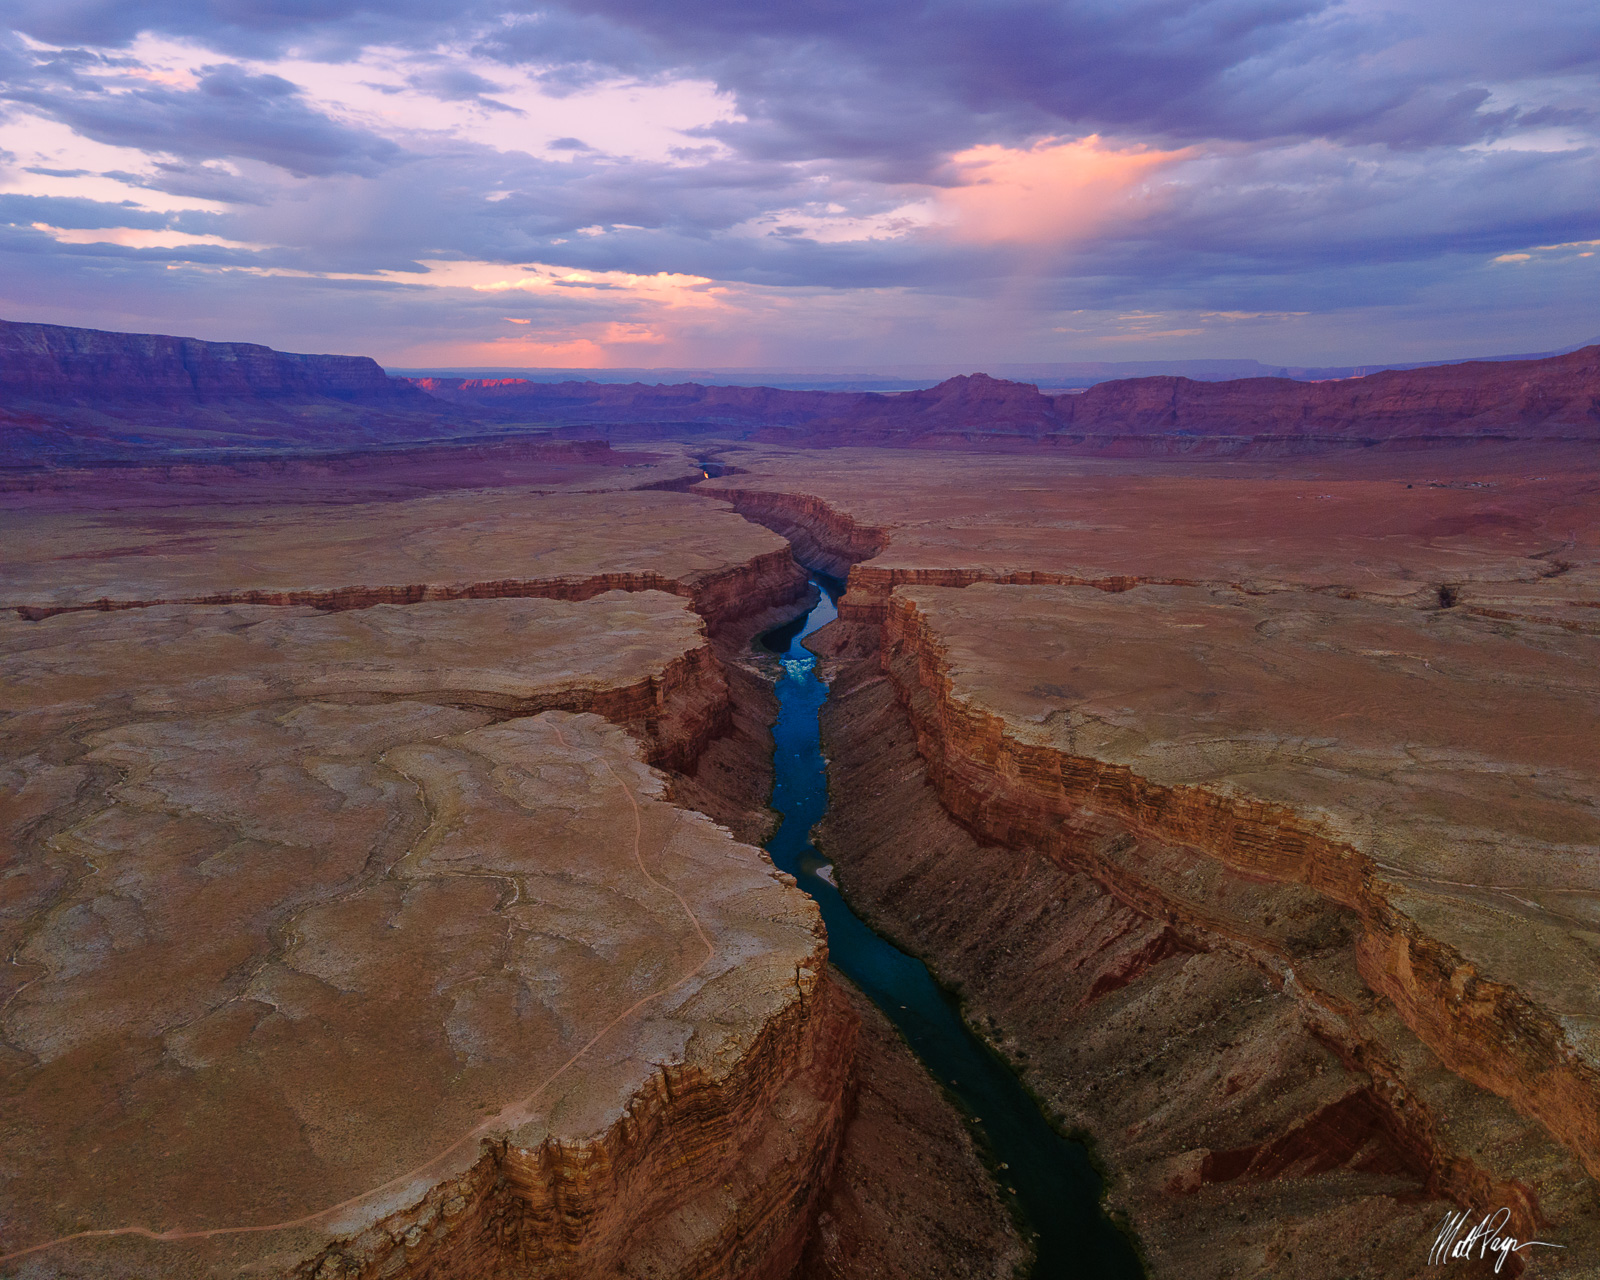 A view of the Colorado River at sunset deep within BLM land in Arizona, USA. Photo © copyright by Matt Payne.